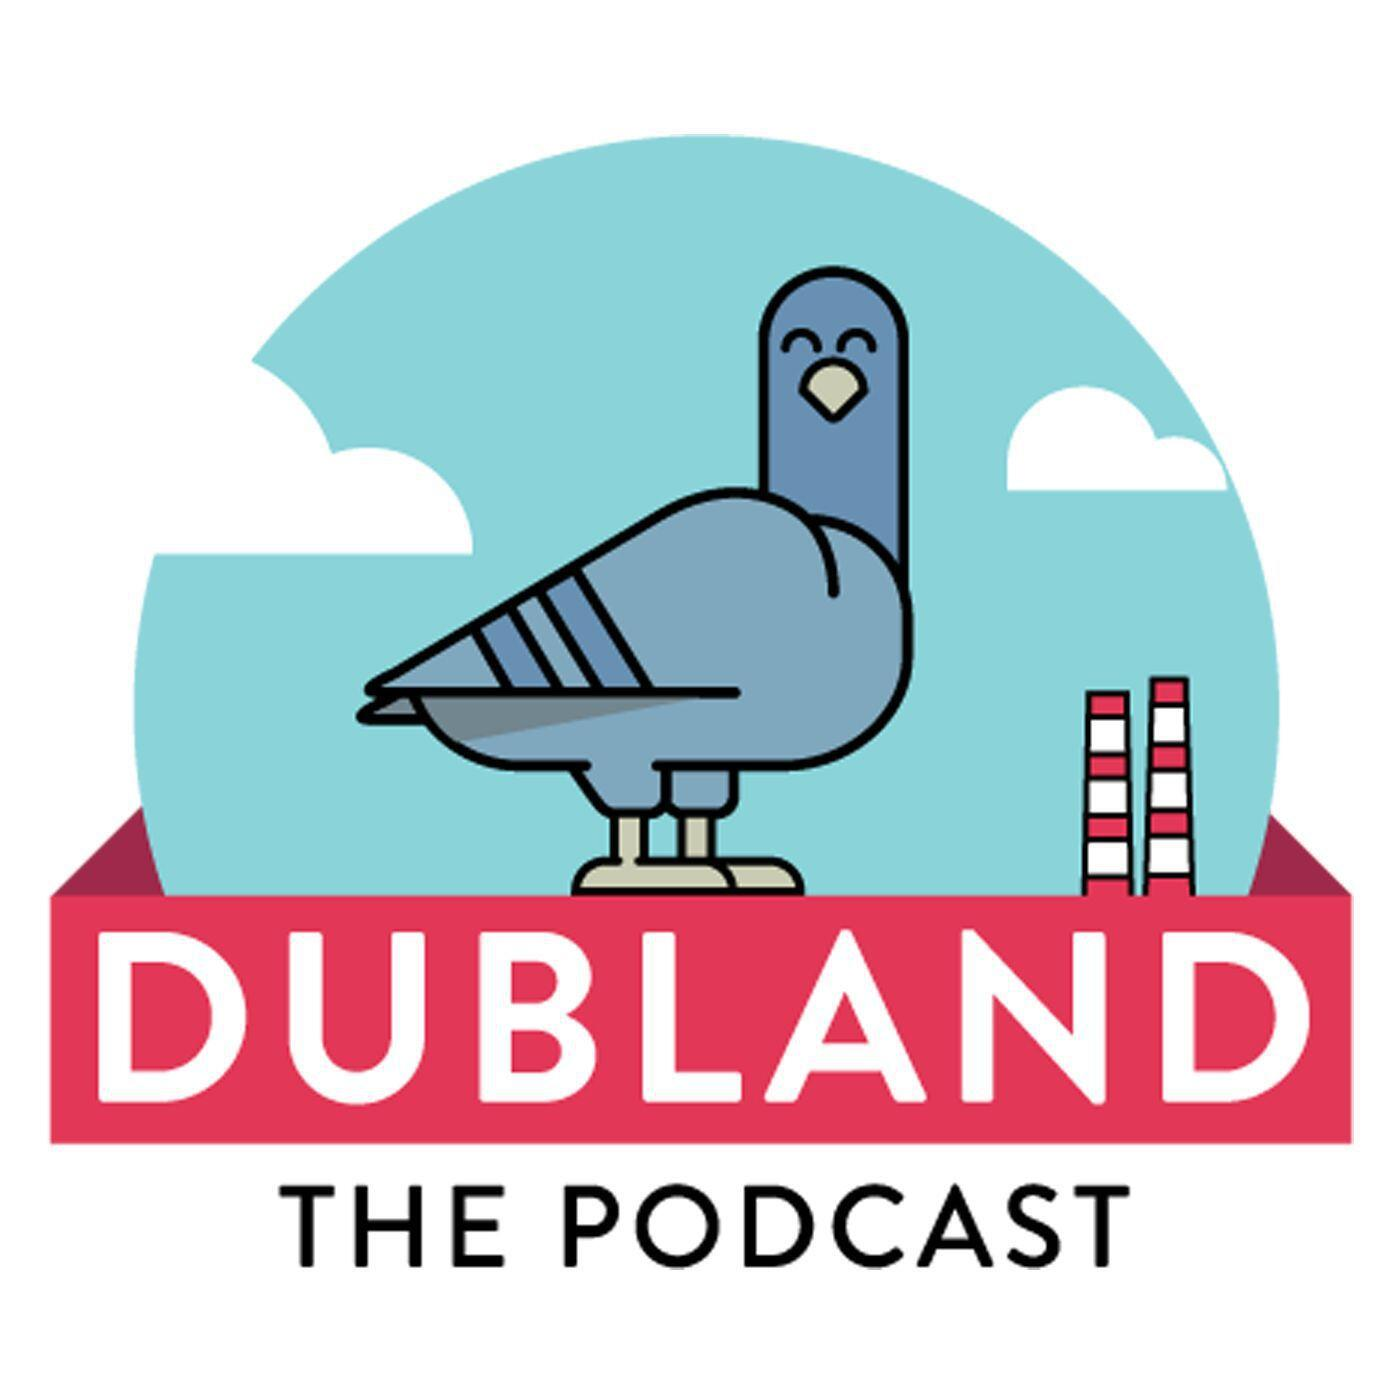 DUBLAND THE PODCAST EPISODE FIVE